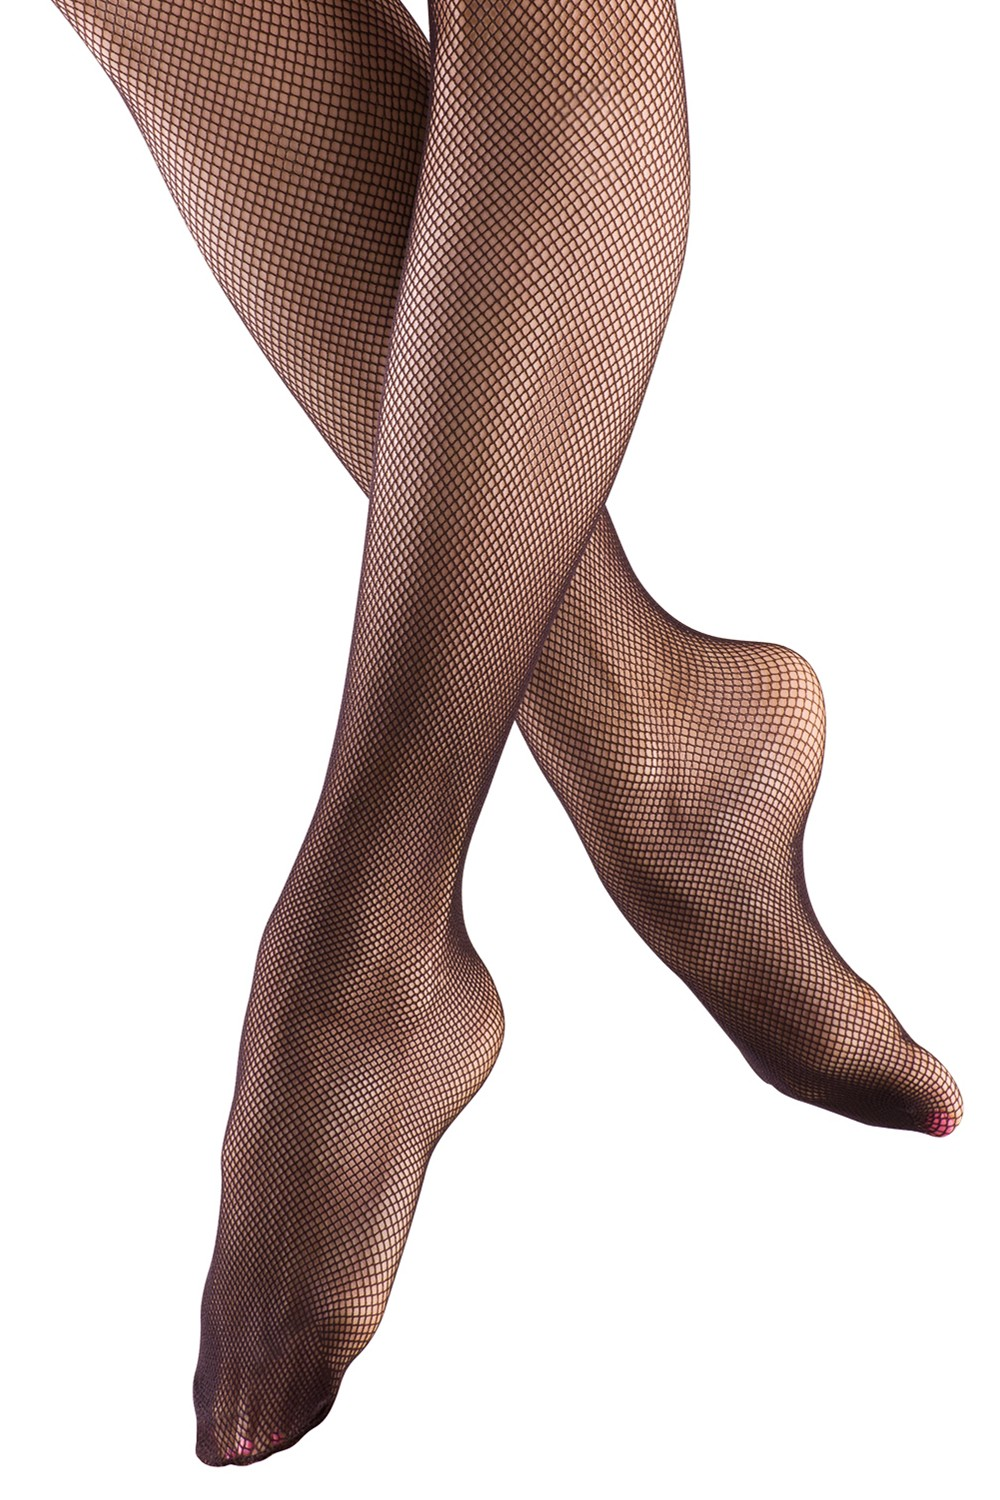 Collant Résille Femme Women's Dance Tights